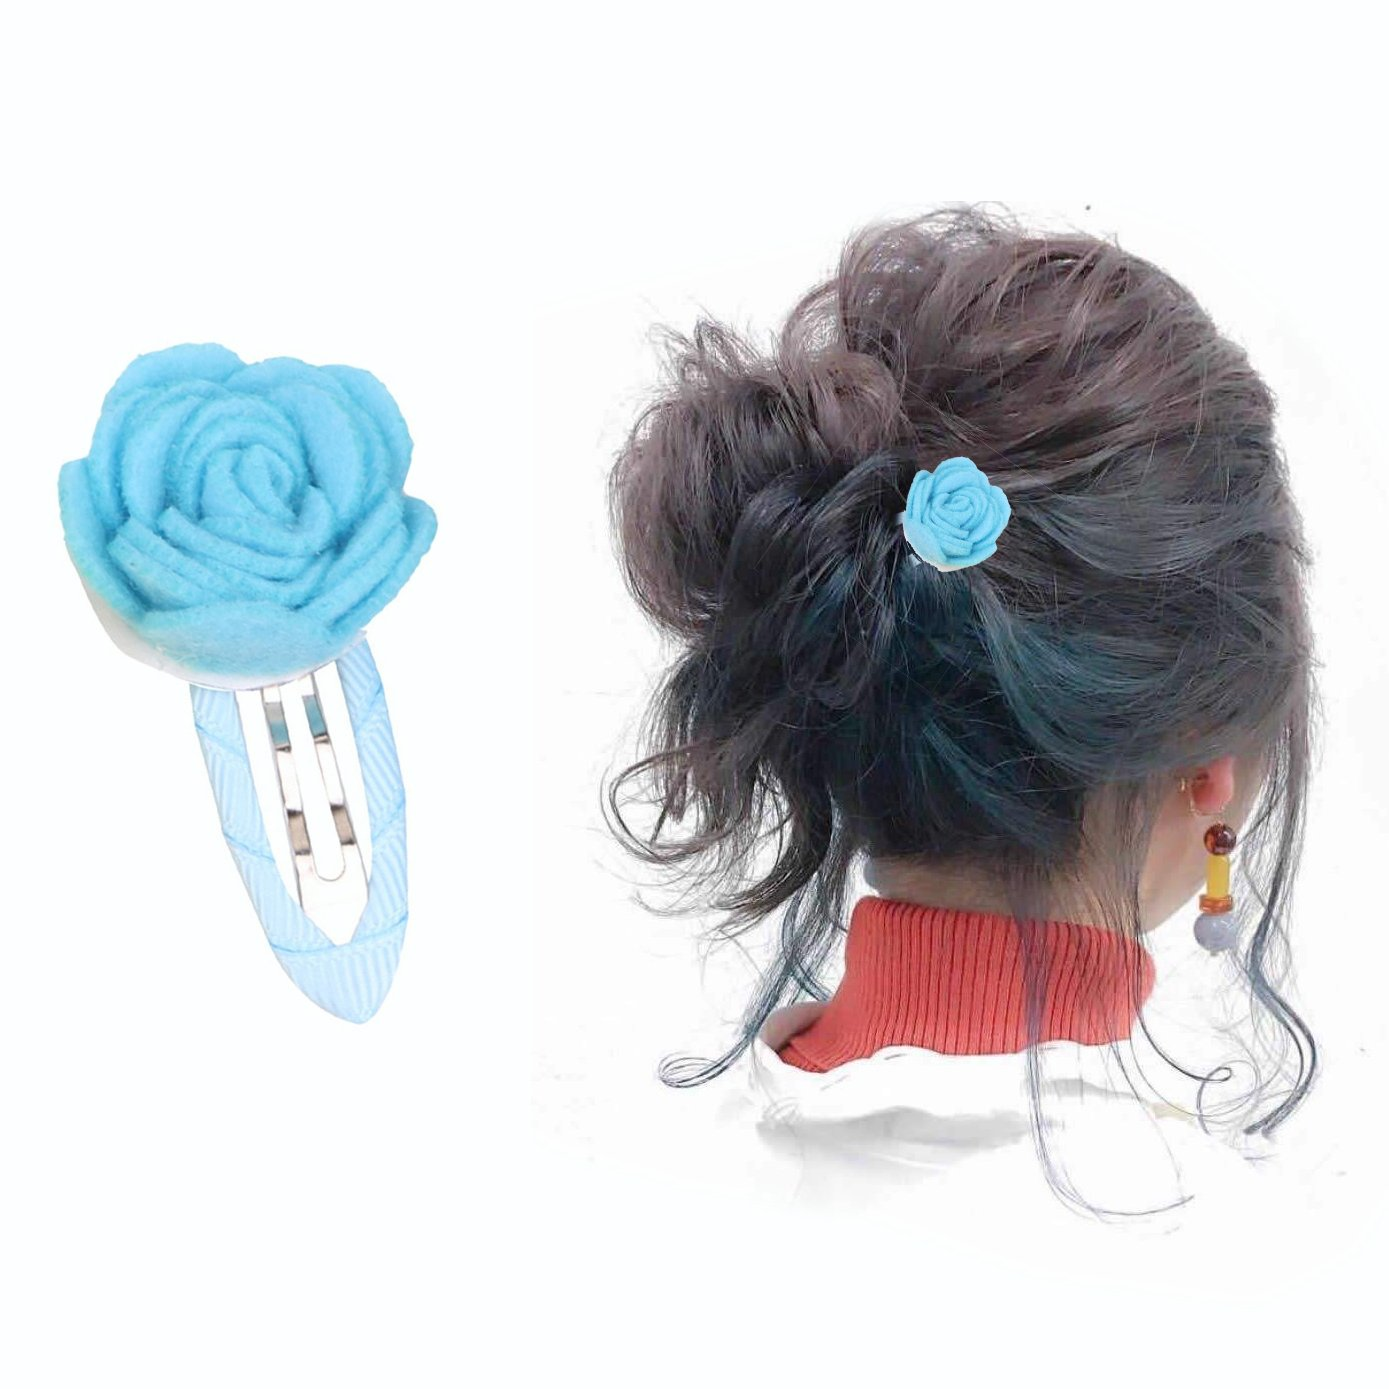 OFKPO 13PCS Rose Hair Clips Barrettes for Baby Toddler Child Girls